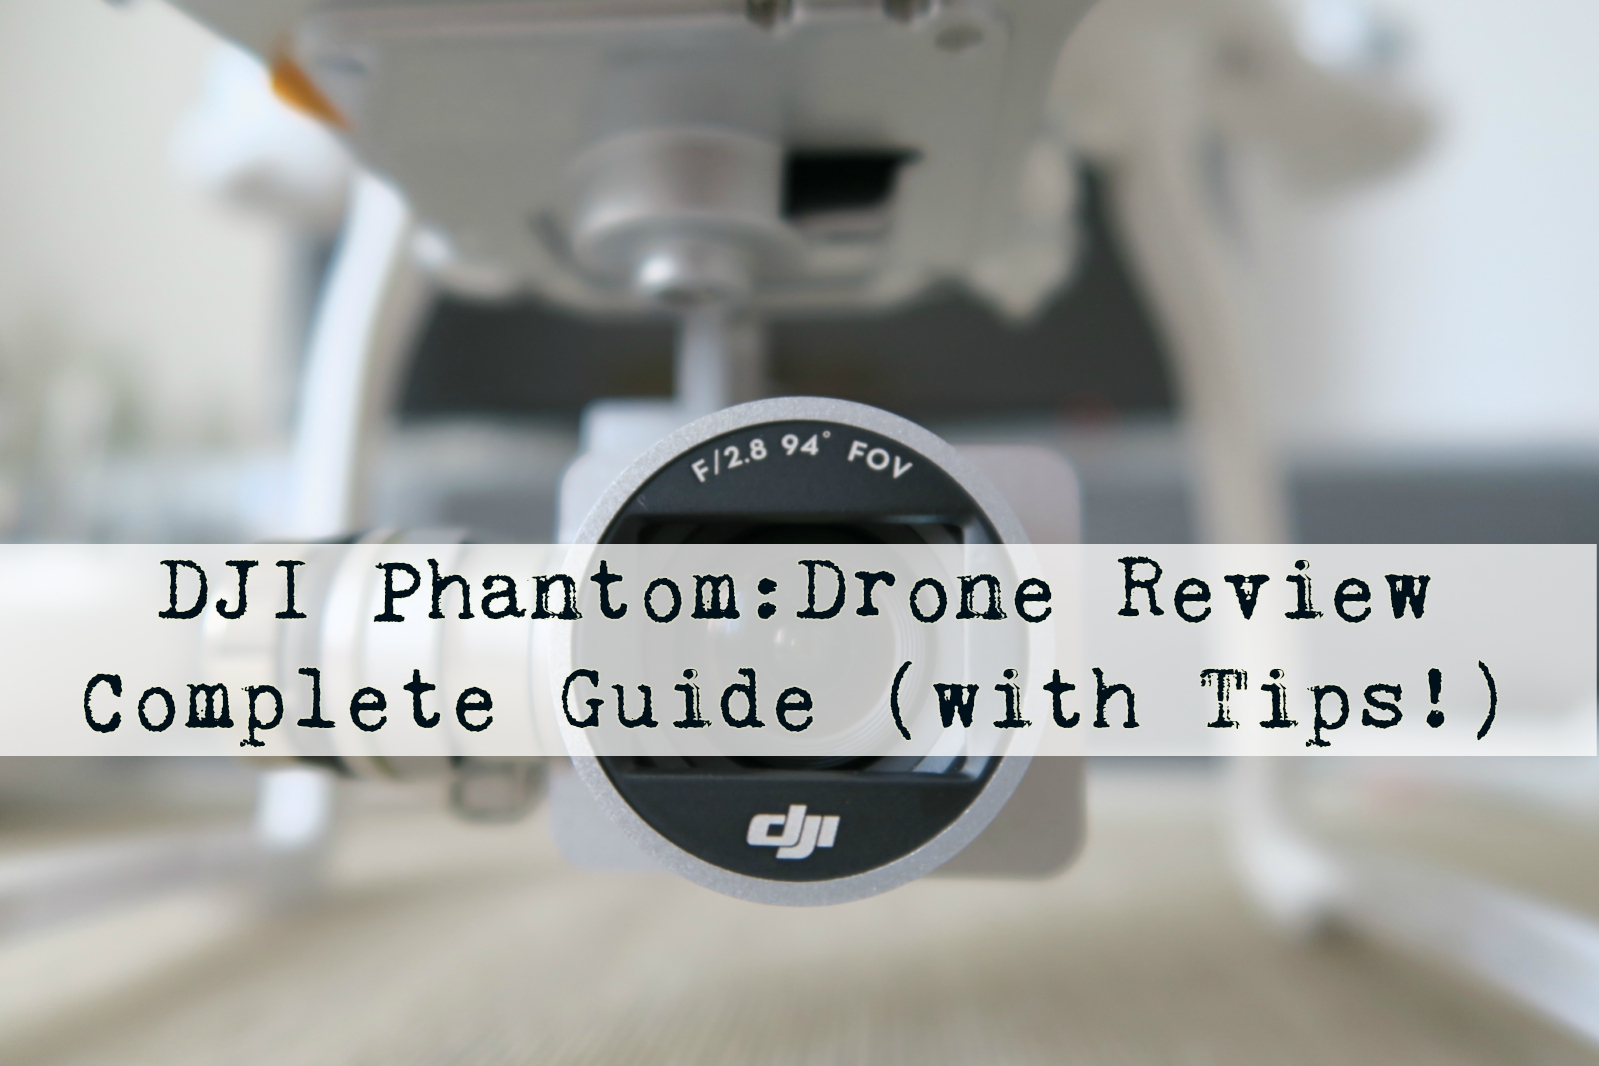 DJI Phantom: Drone Guide, Review and Tips